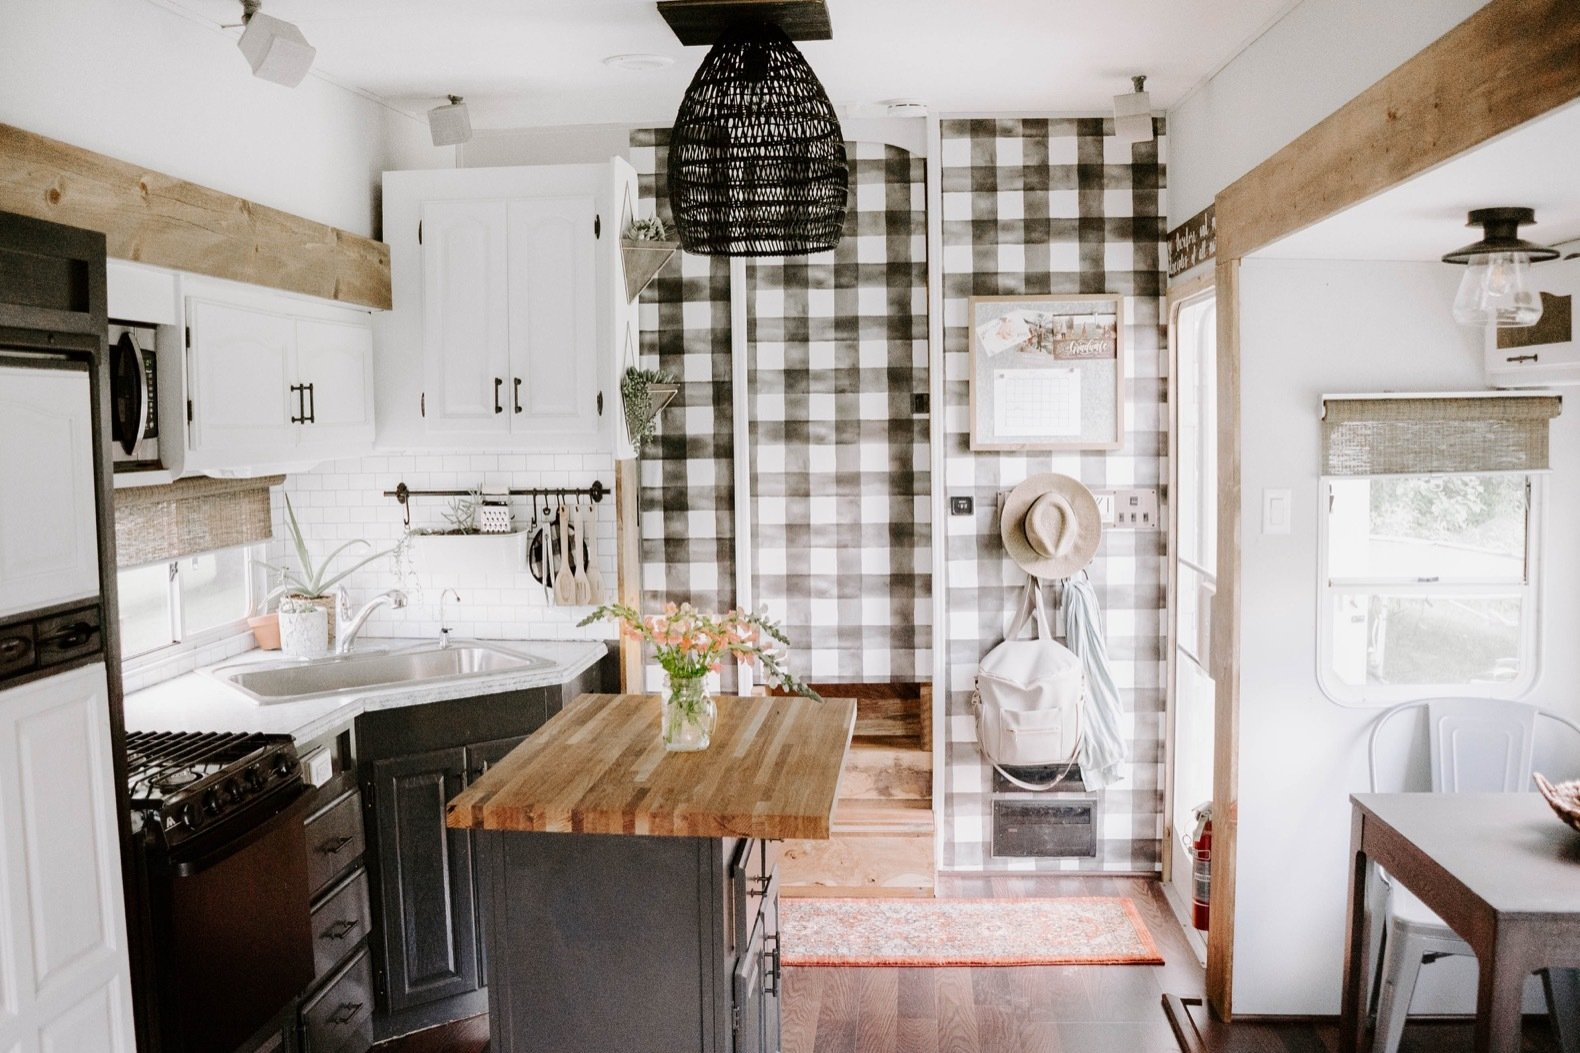 Kitchen, Medium Hardwood Floor, Microwave, Subway Tile Backsplashe, Refrigerator, White Cabinet, Drop In Sink, Wood Counter, Ceiling Lighting, and Range The couple didn't cover all the walls with paint. Instead, they applied Buffalo plaid wallpaper (from Home Depot) to select areas.    Photo 10 of 25 in Before & After: An Uninspired RV Gets a Cheery Refresh For $5K